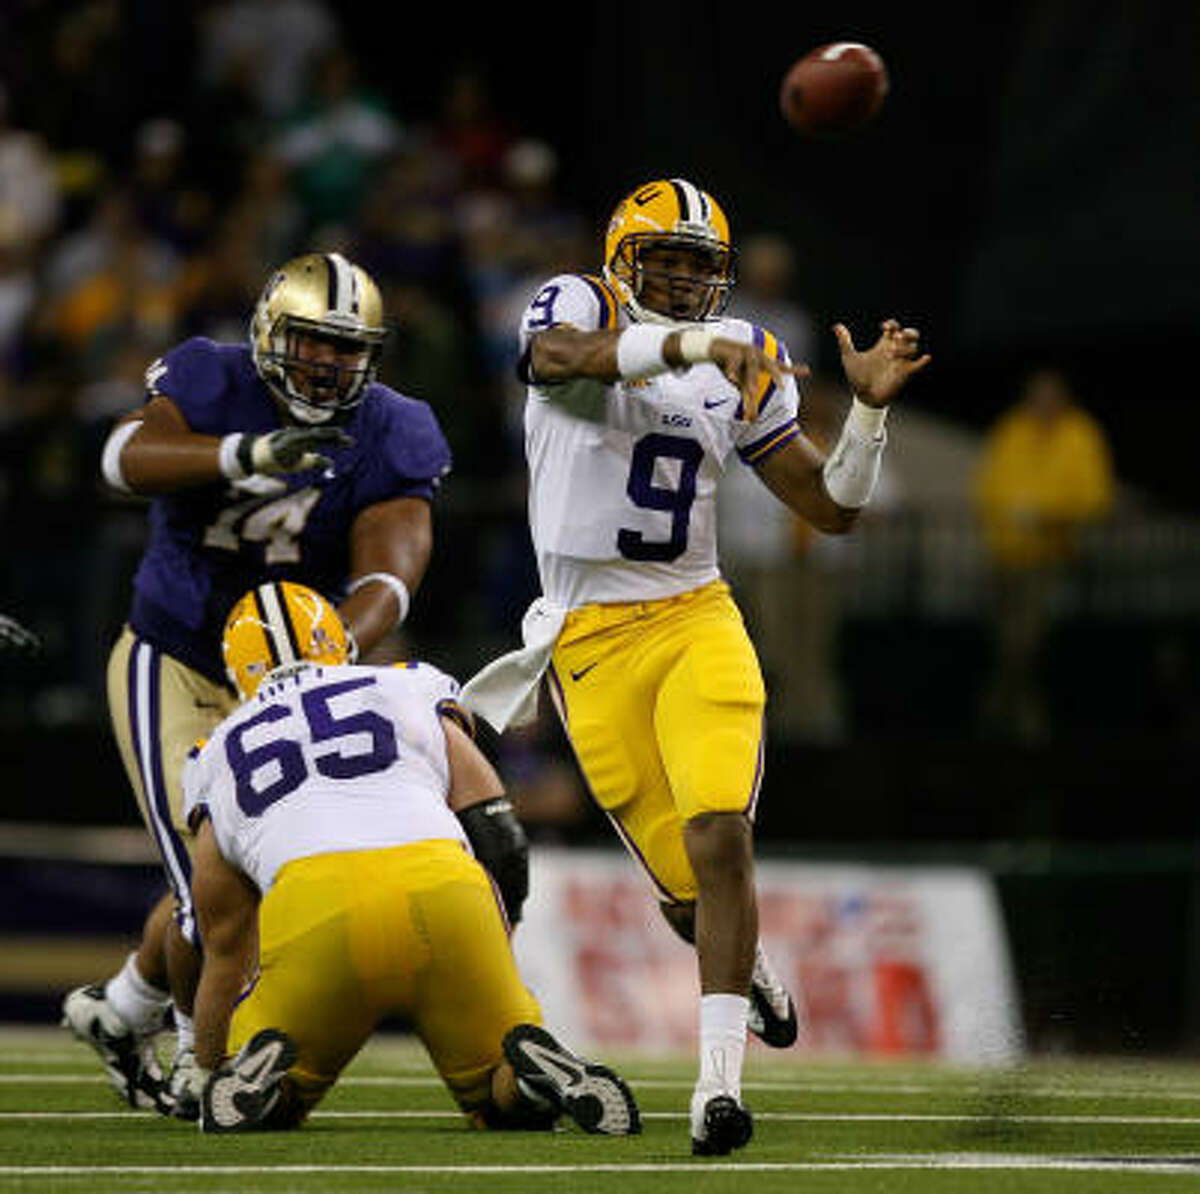 No. 11 LSU 31, Washington 23 LSU quarterback Jordan Jefferson passes against the Washington Huskies.